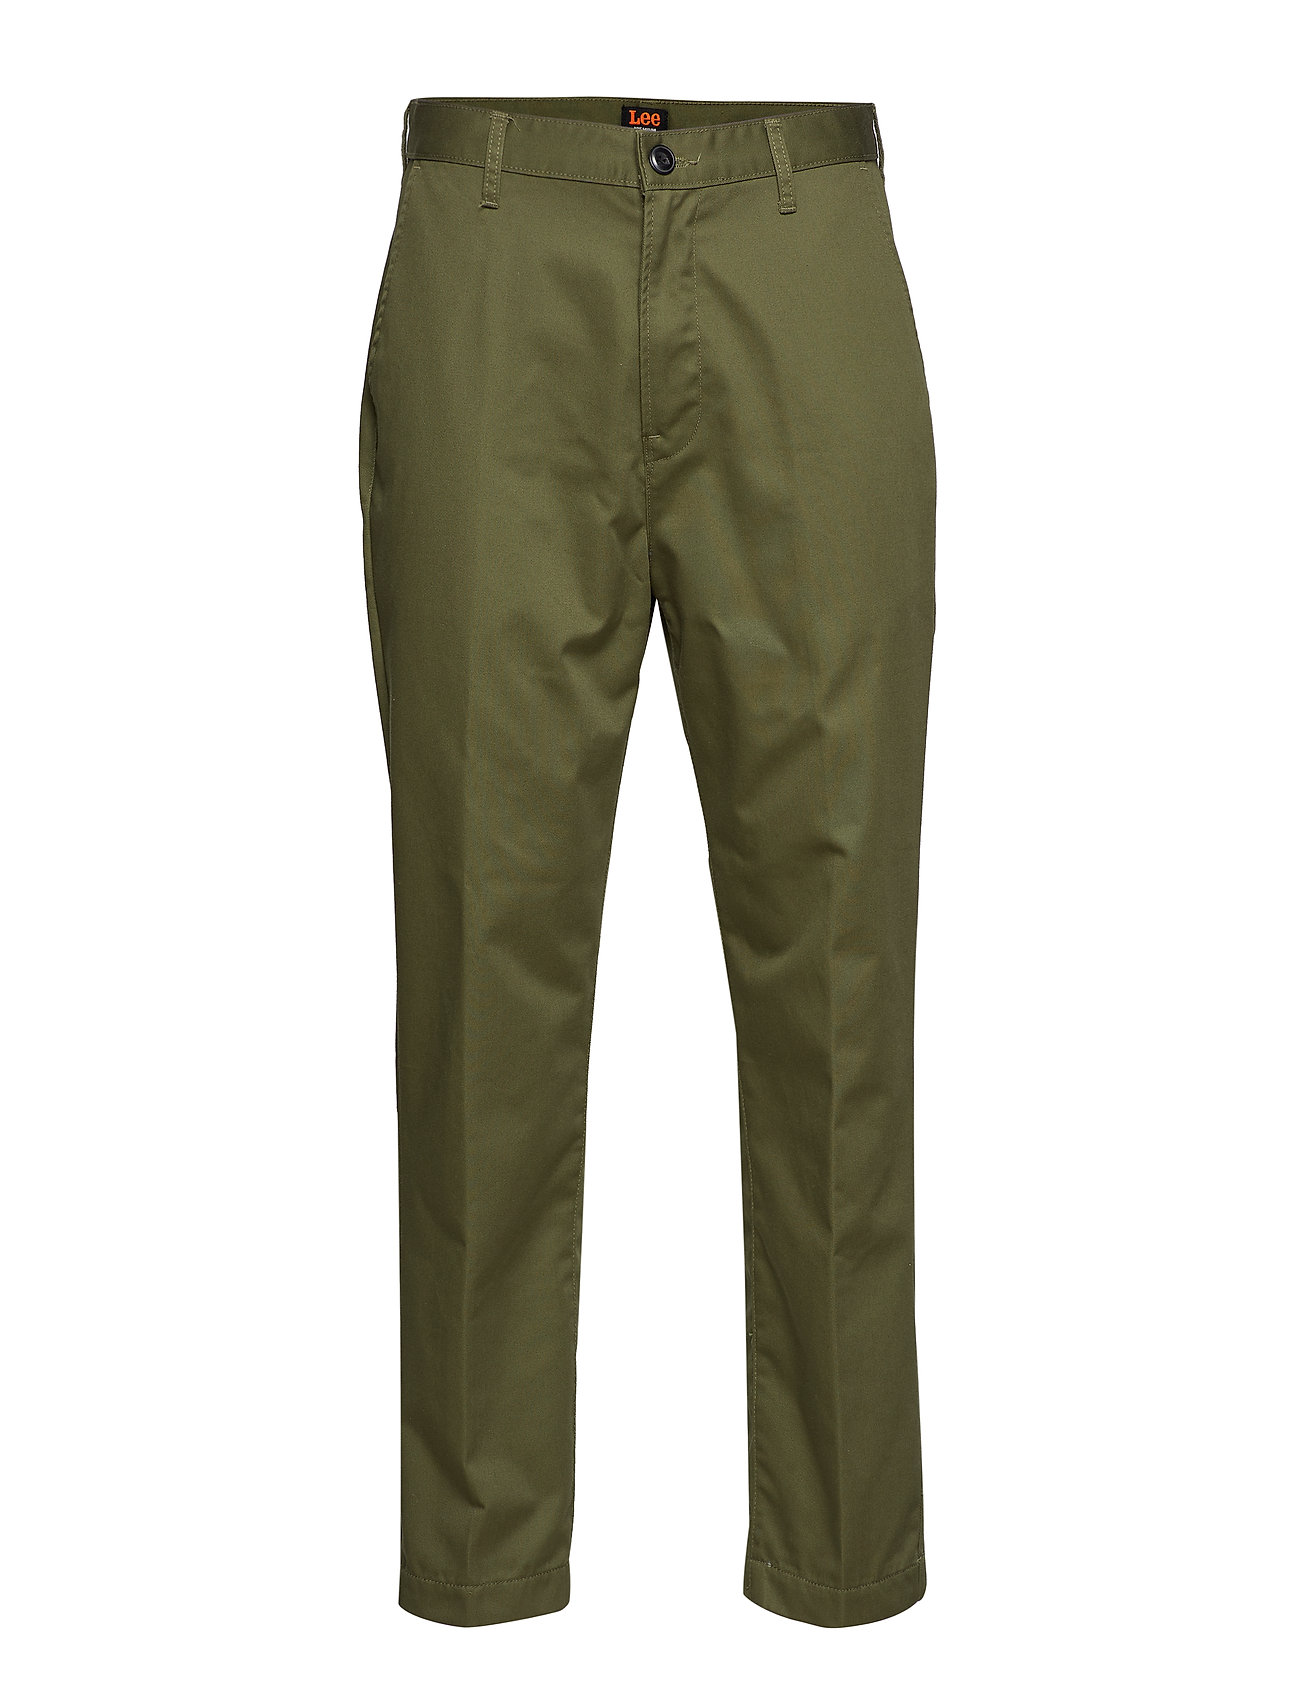 Lee Jeans Relaxed chino - OLIVE